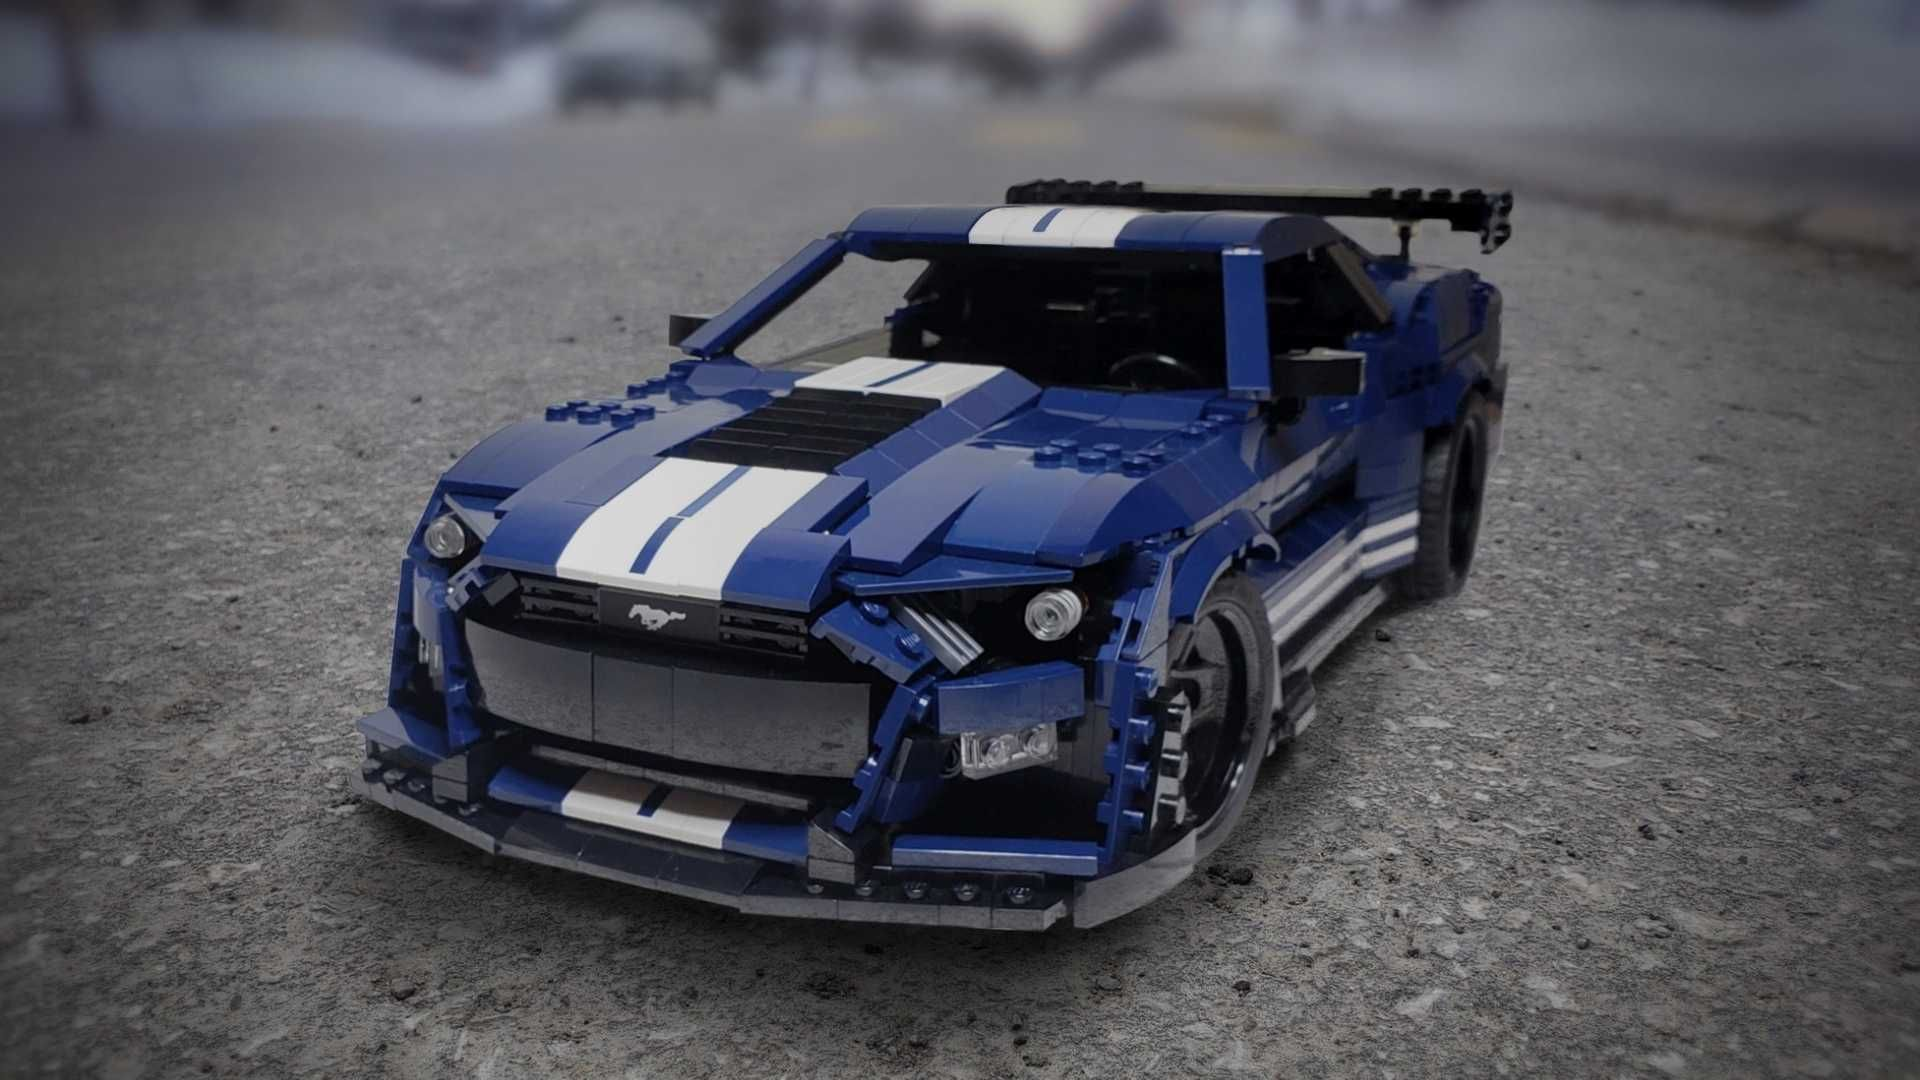 Lego Fan Builds Awesome 2020 Shelby Gt500 Ford Mustang Shelby